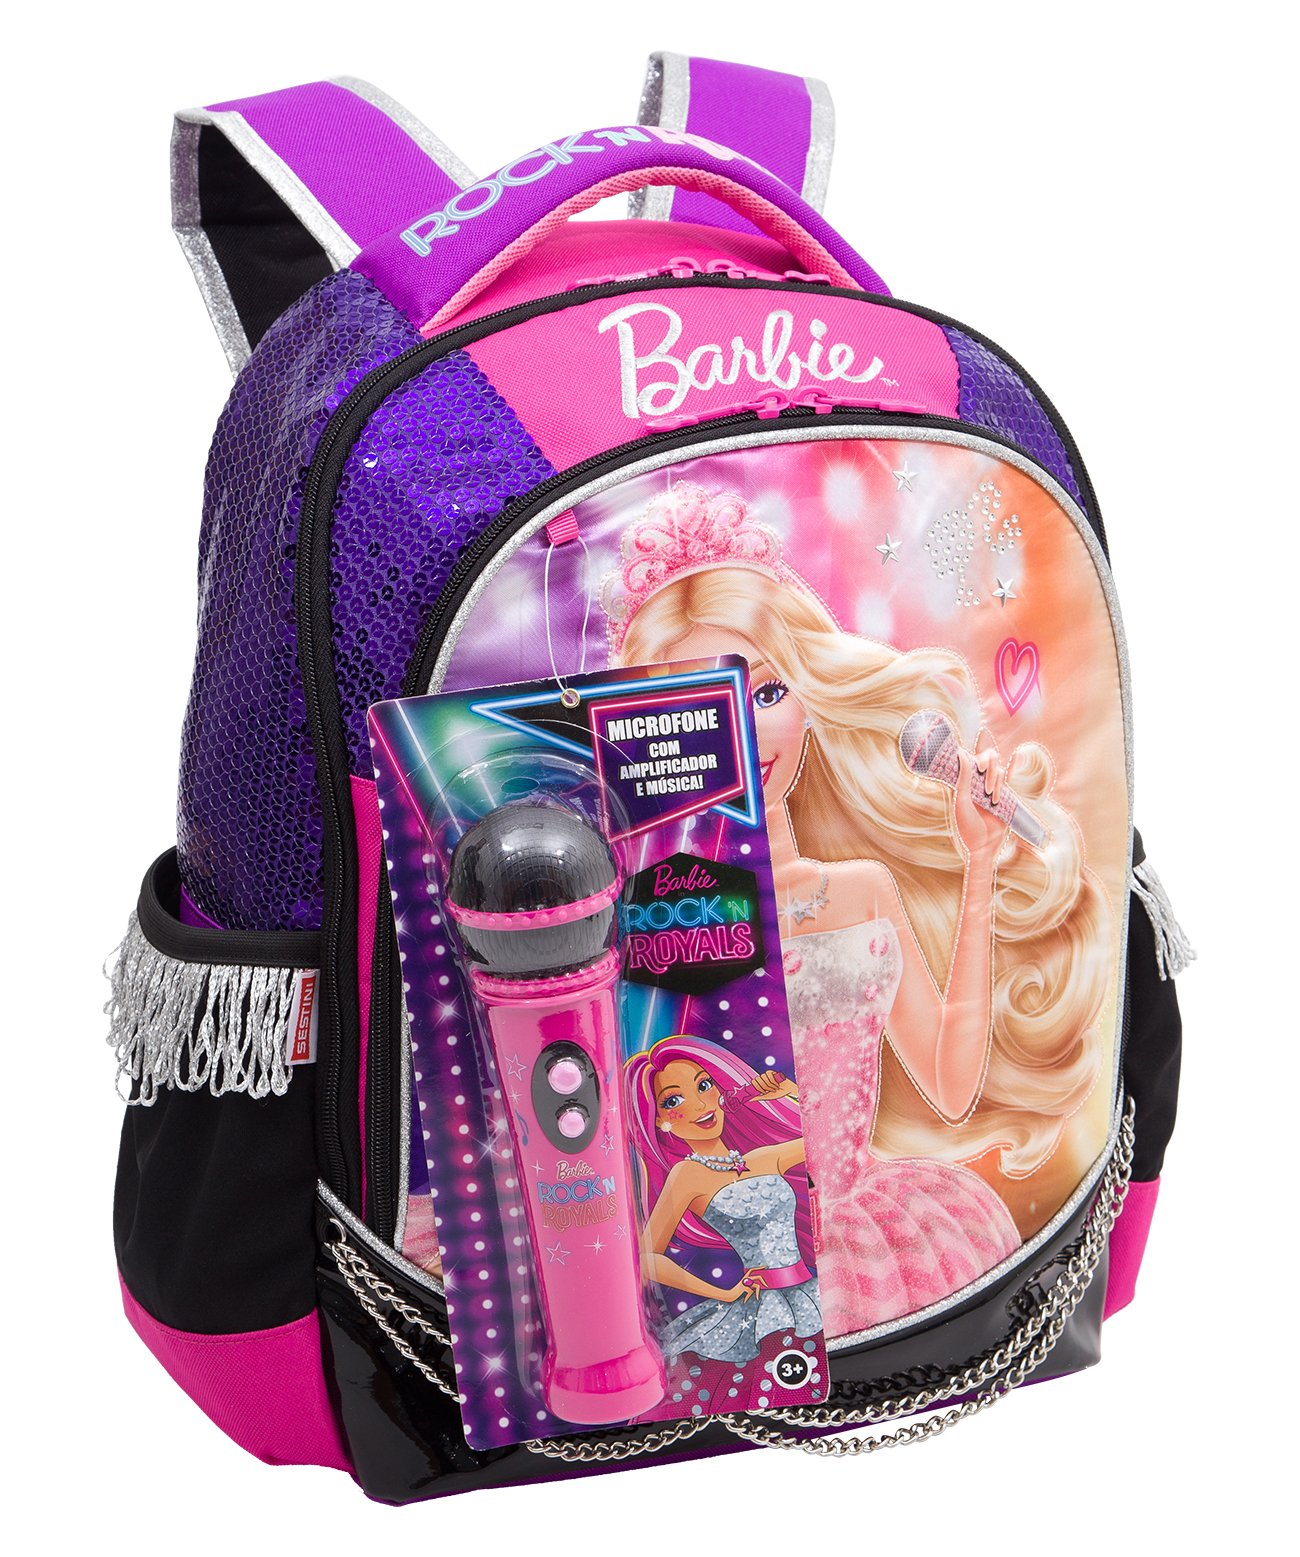 Mochila Grande Barbie Rock Royals – 1UN